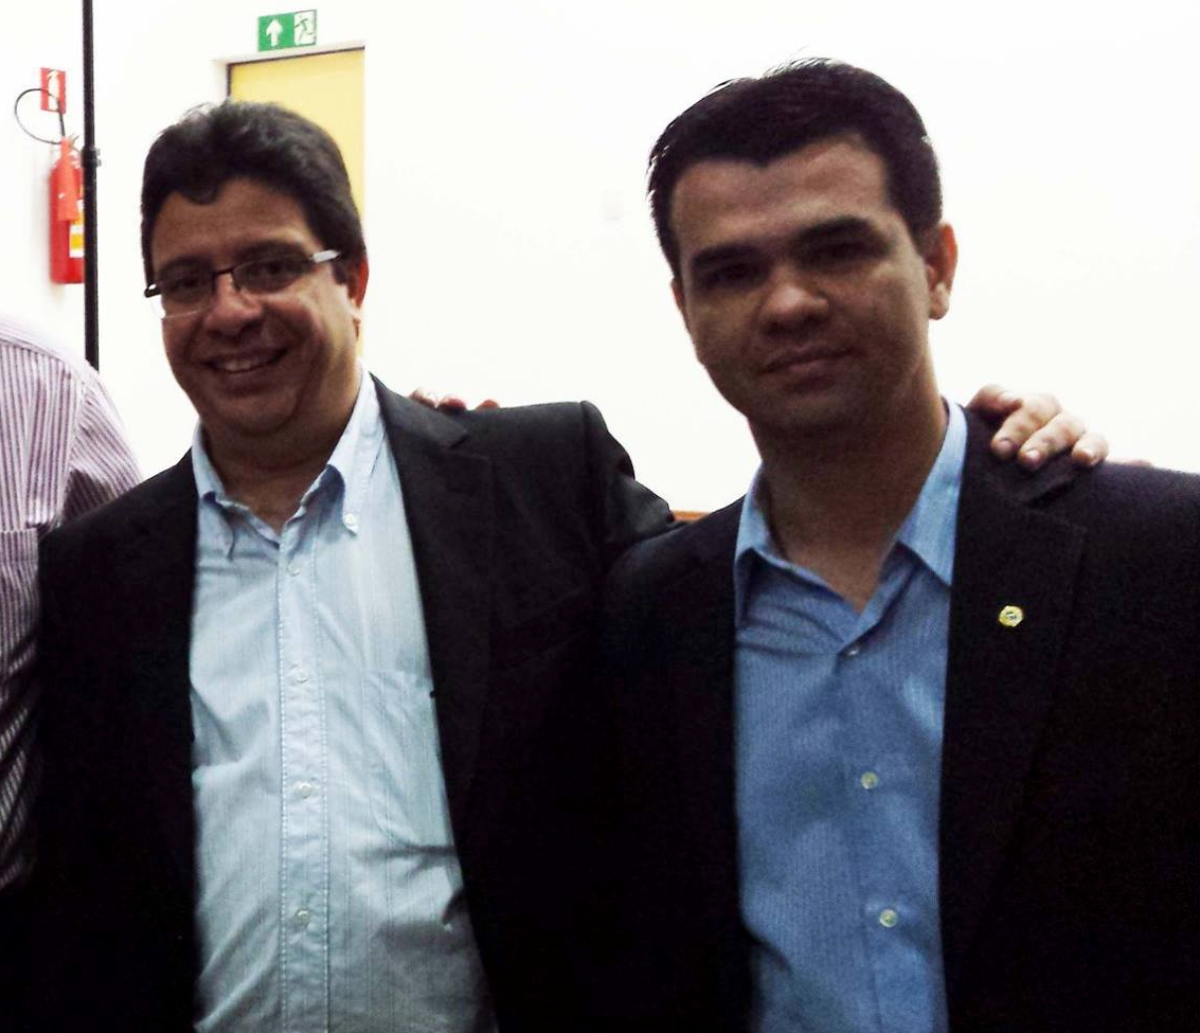 Adilson Neves, diretor da Multipla Business e Wederson Marinho, direotr da DP3 Business